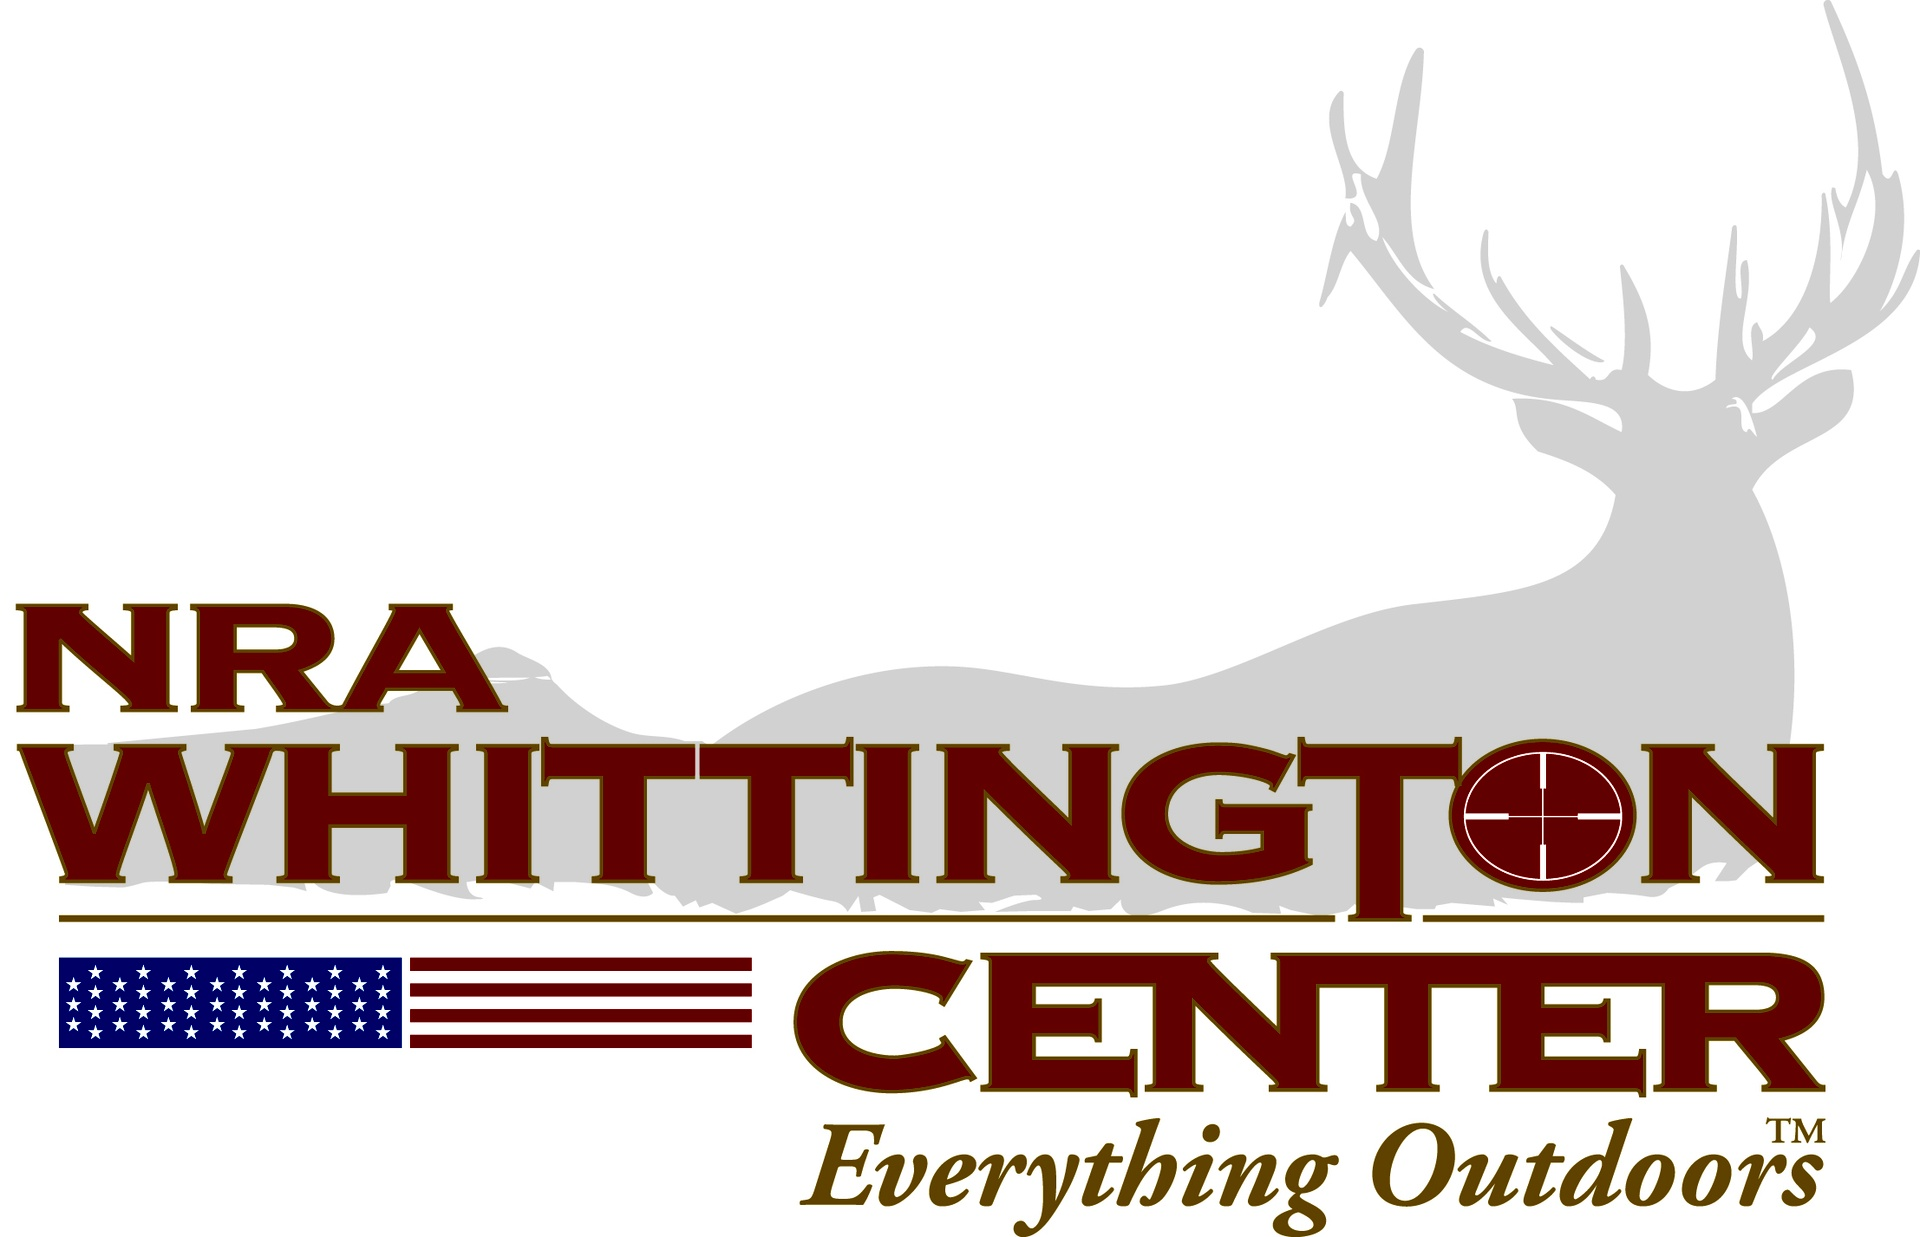 NRA Whittington Center - Raton, NM